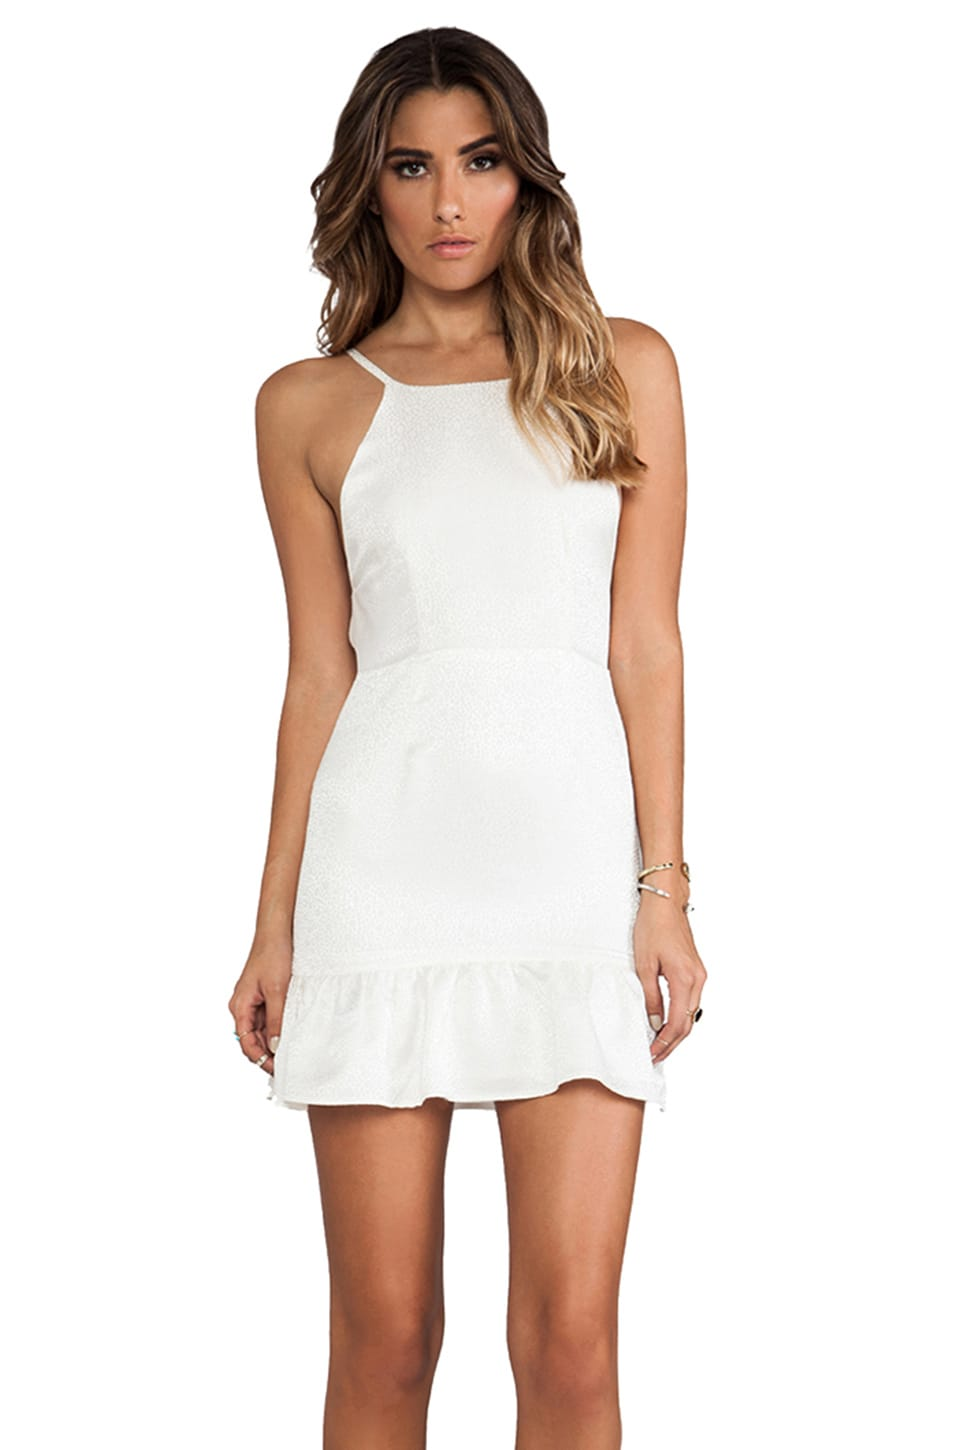 STONE_COLD_FOX Pistol Dress in White